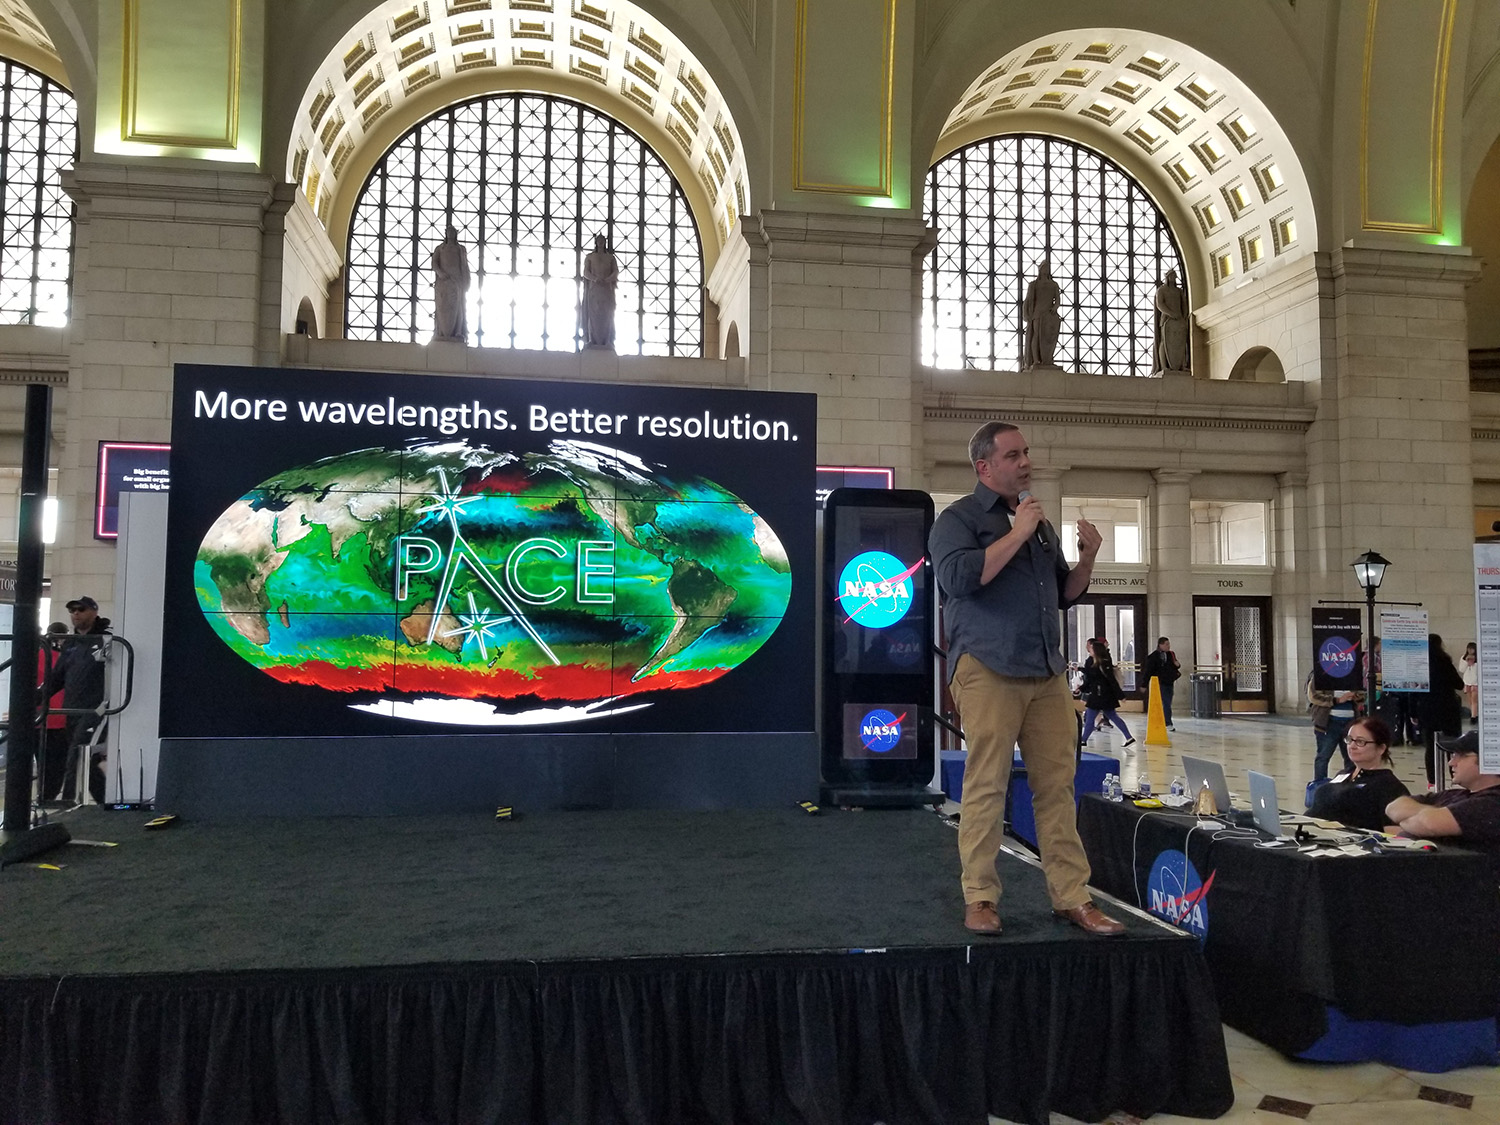 PACE Project Scientist Dr. Jeremy Werdell concludes a hyperwall talk that he presented for a public audience at the NASA Earth Day event in Washington, D.C.